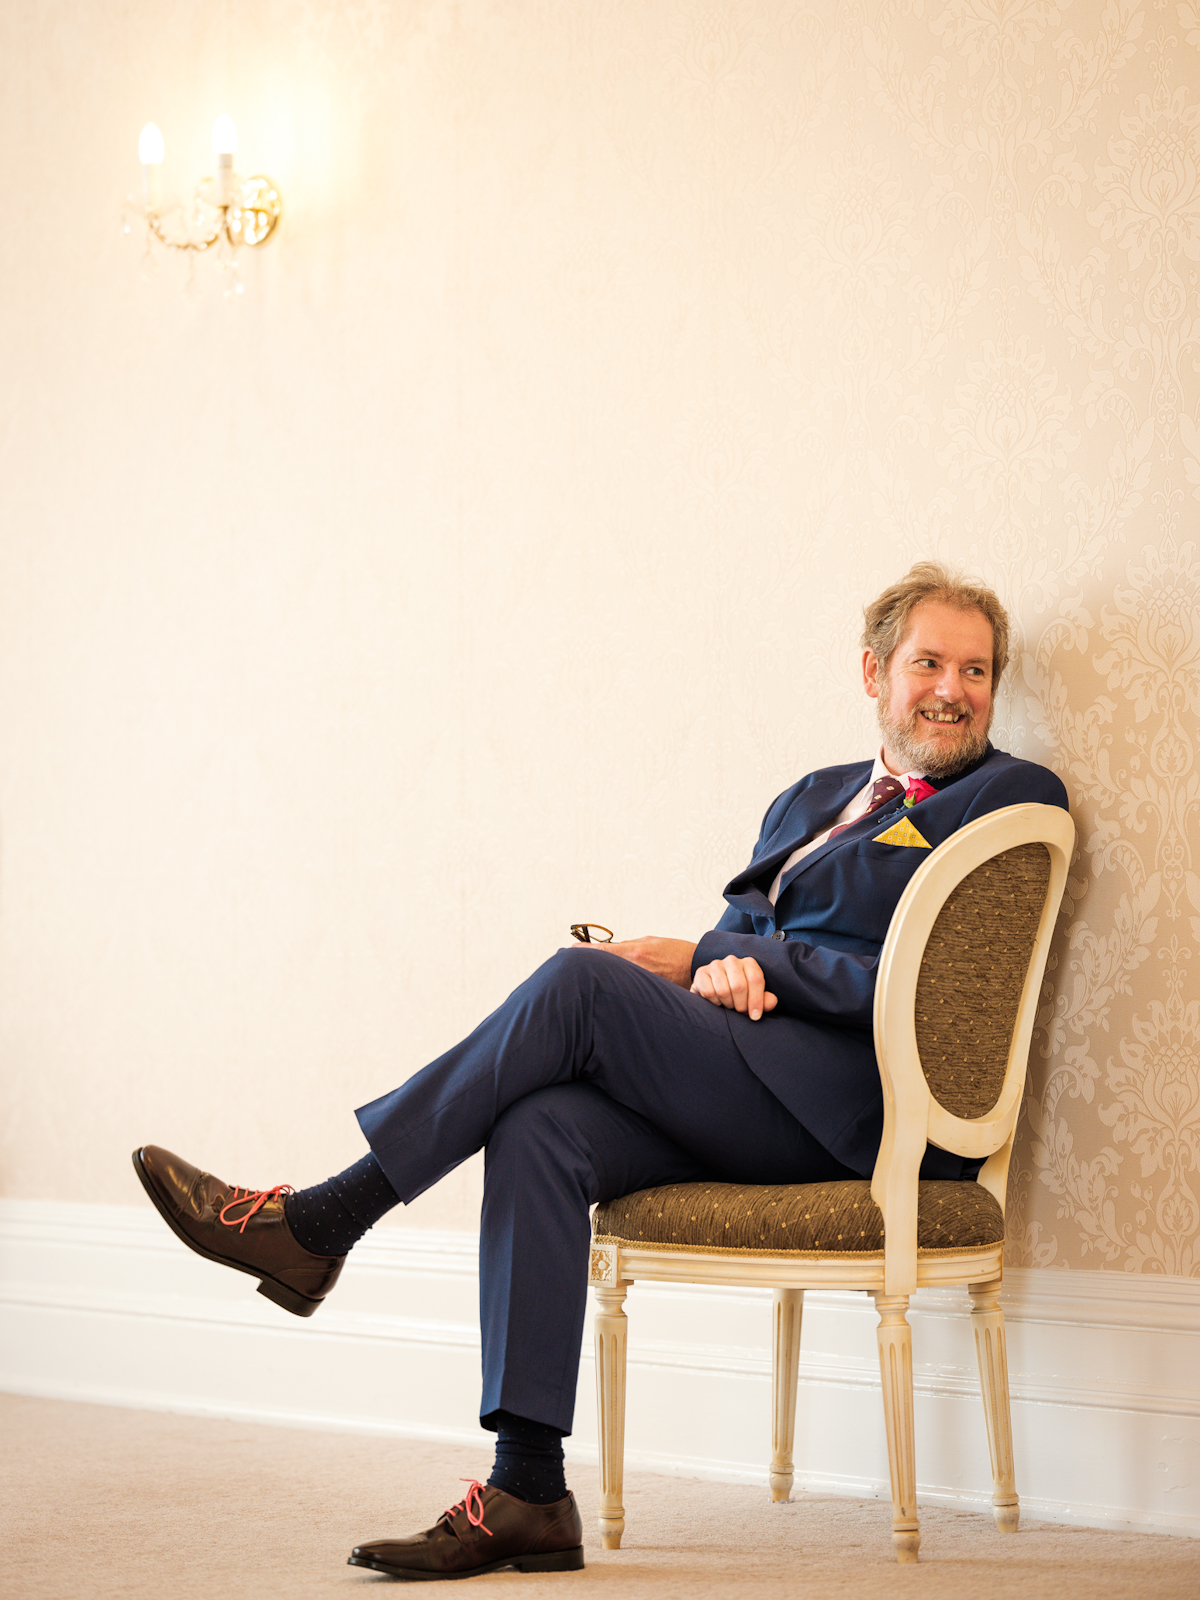 Groom during socially distanced wedding ceremony at The Mansion House in Tunbridge Wells